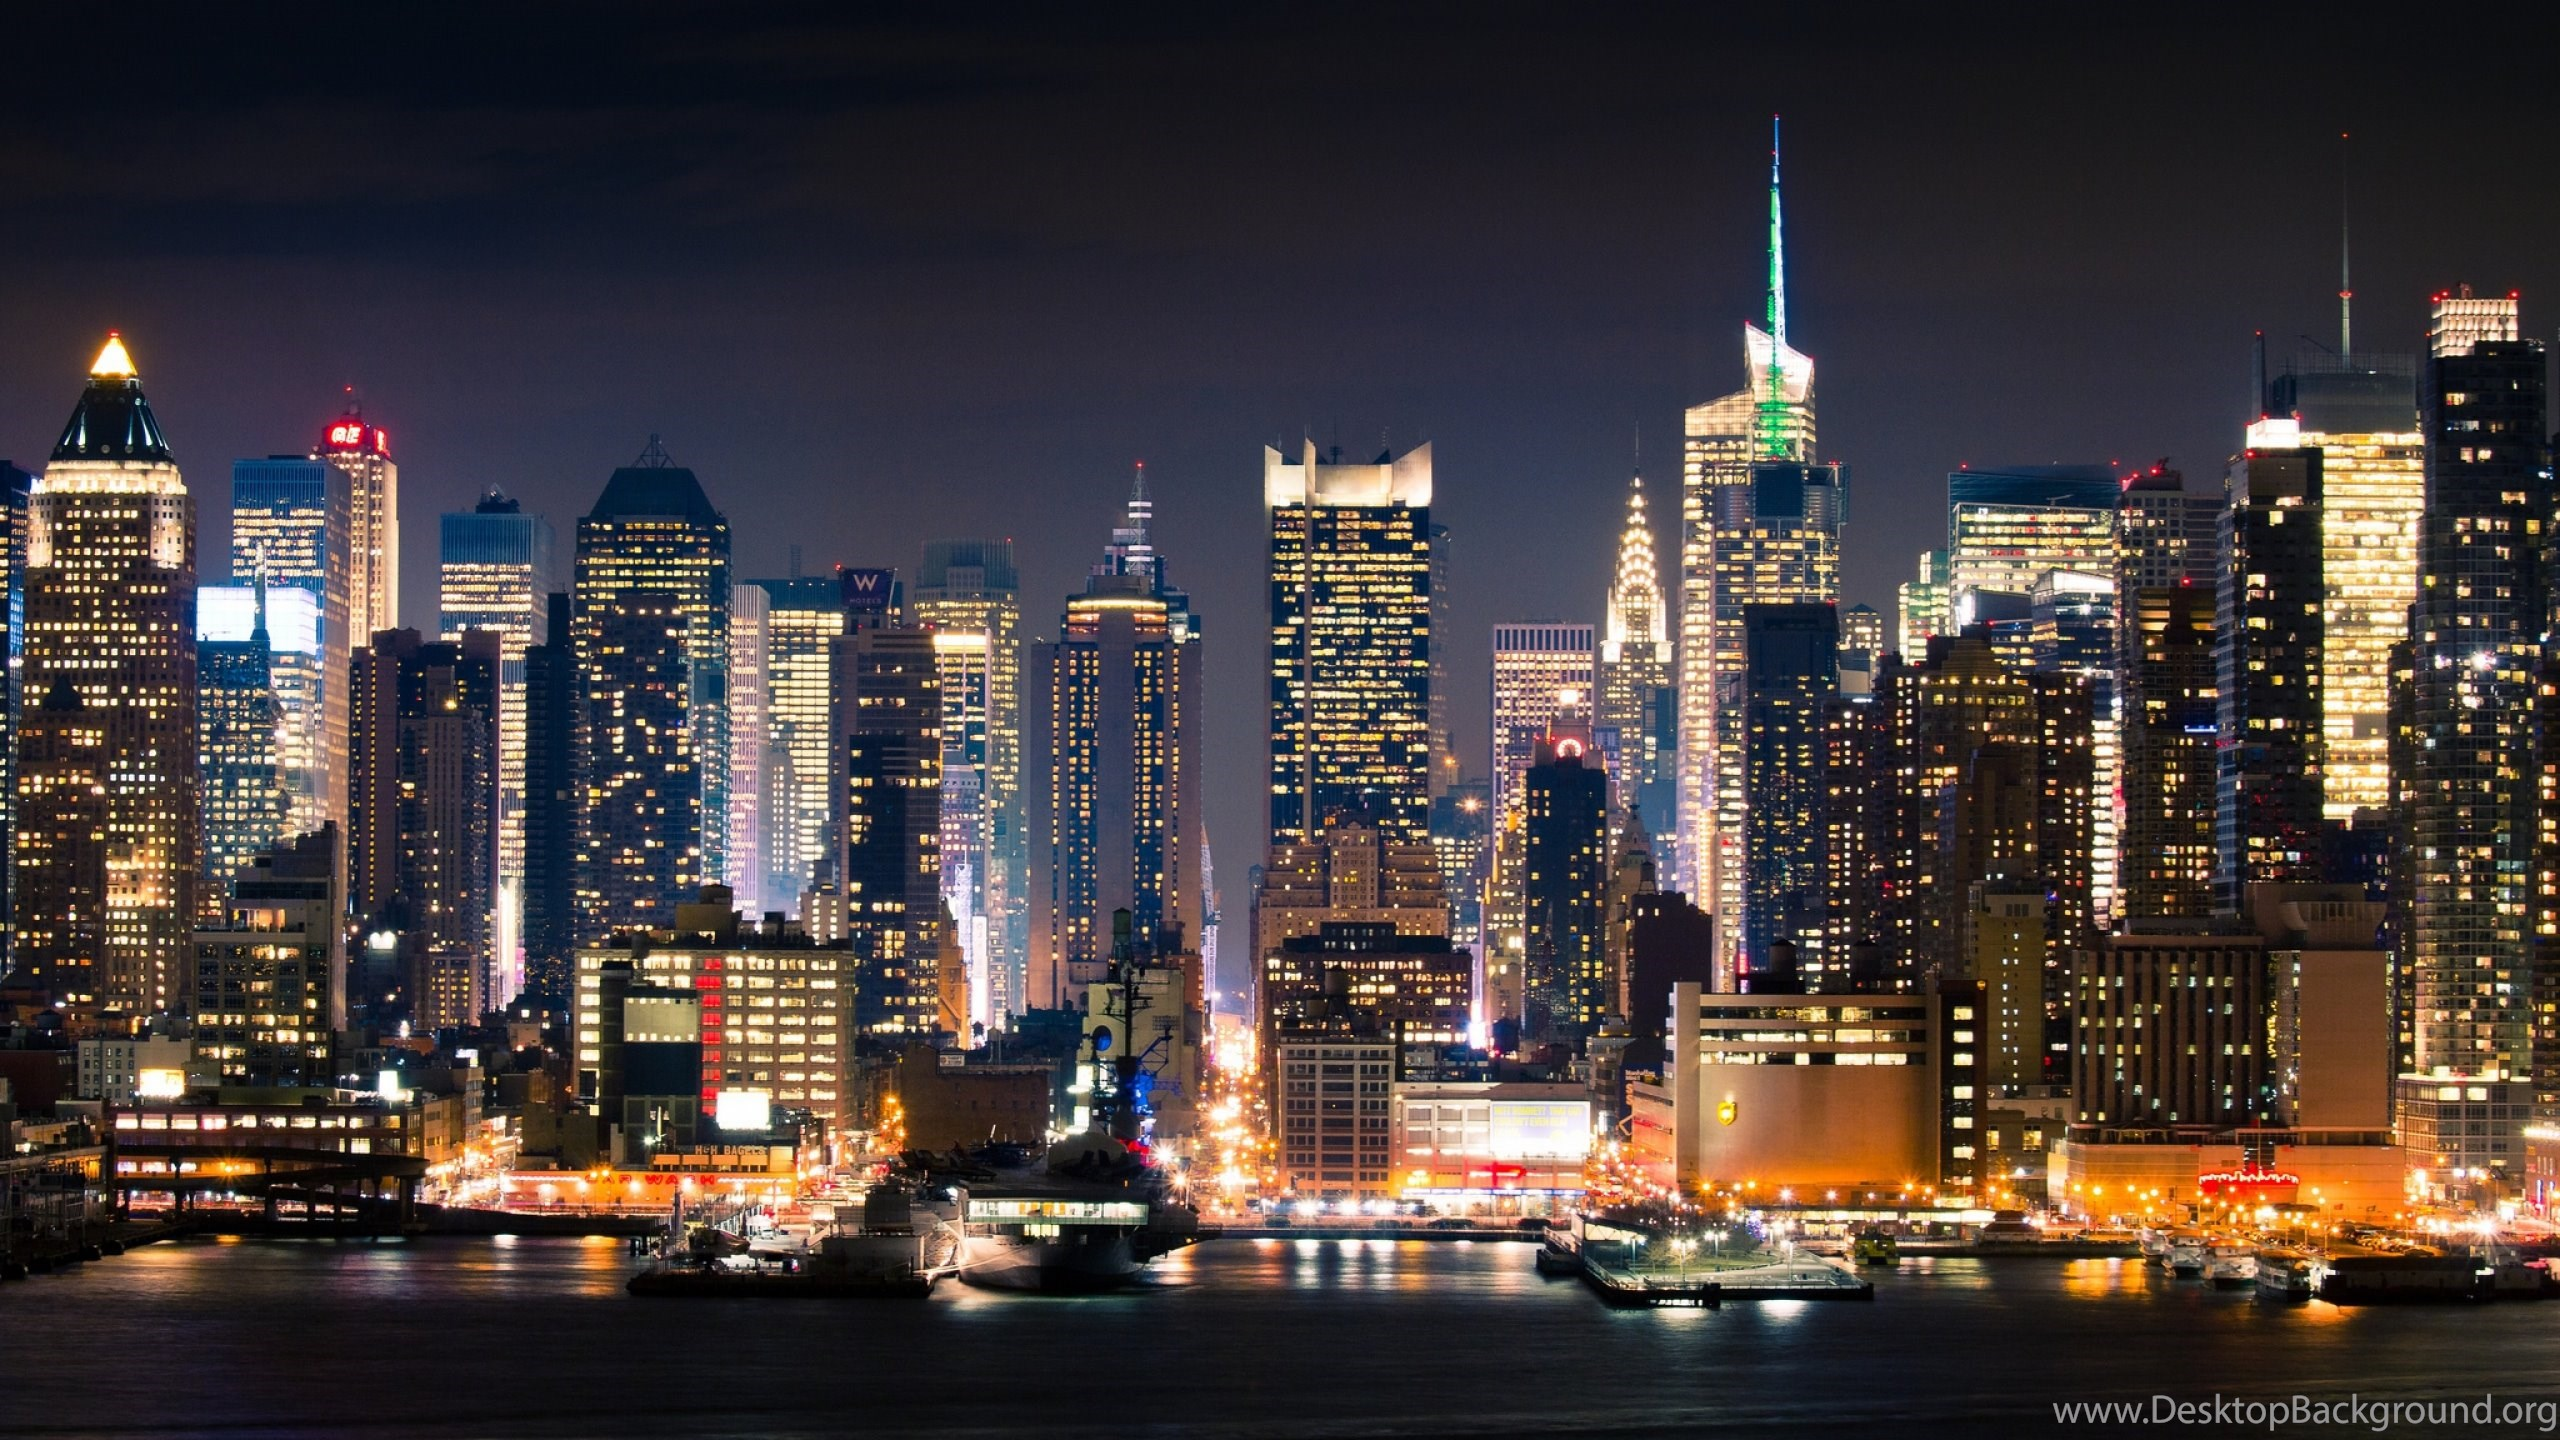 New York City At Night Manhattan 2560x1440 Hd Wallpapers And Free Desktop Background